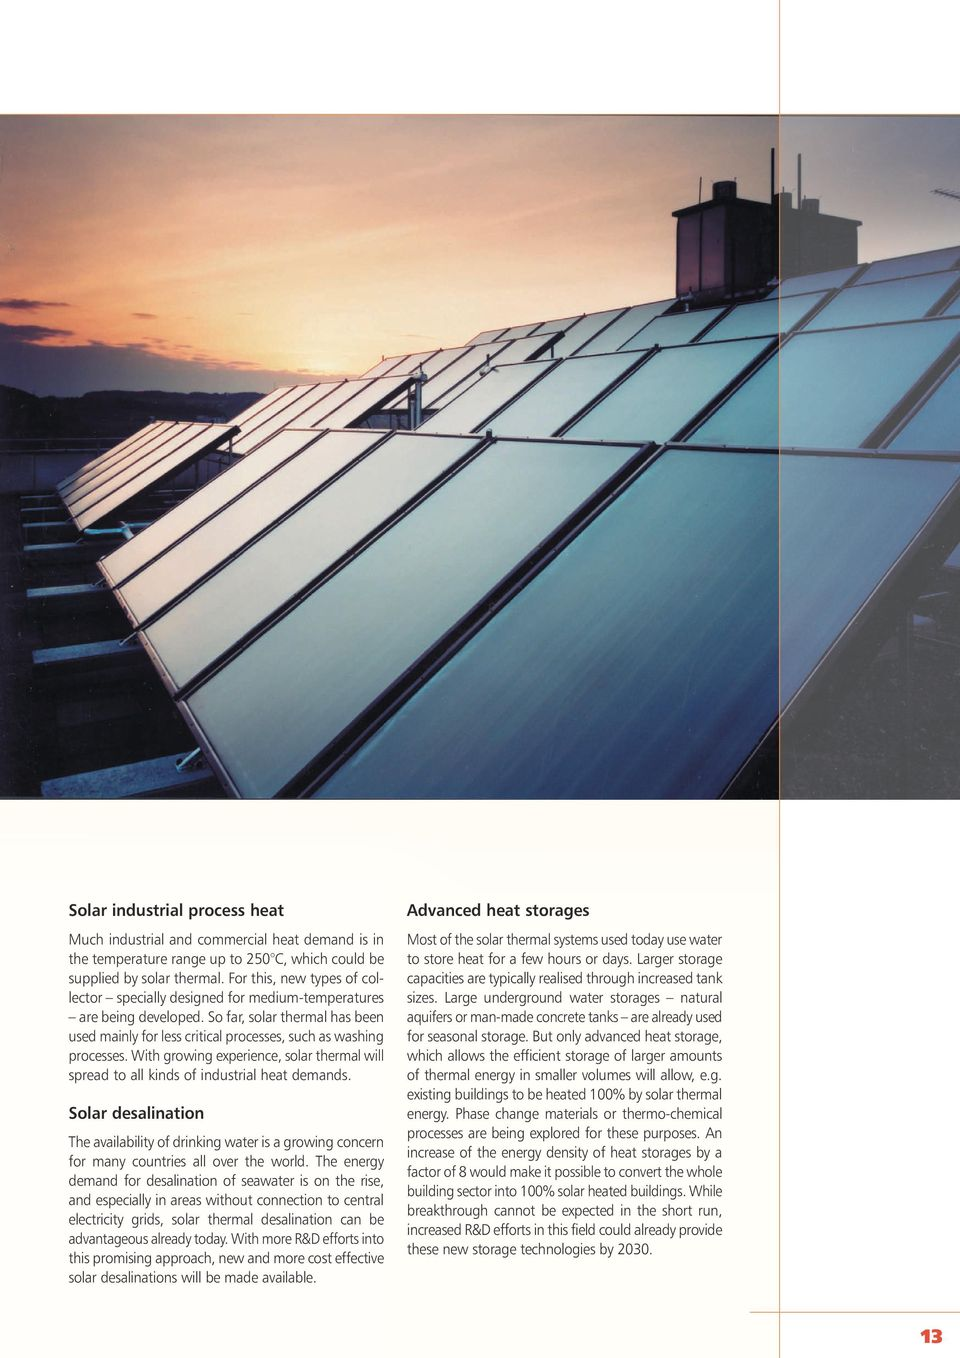 With growing experience, solar thermal will spread to all kinds of industrial heat demands.